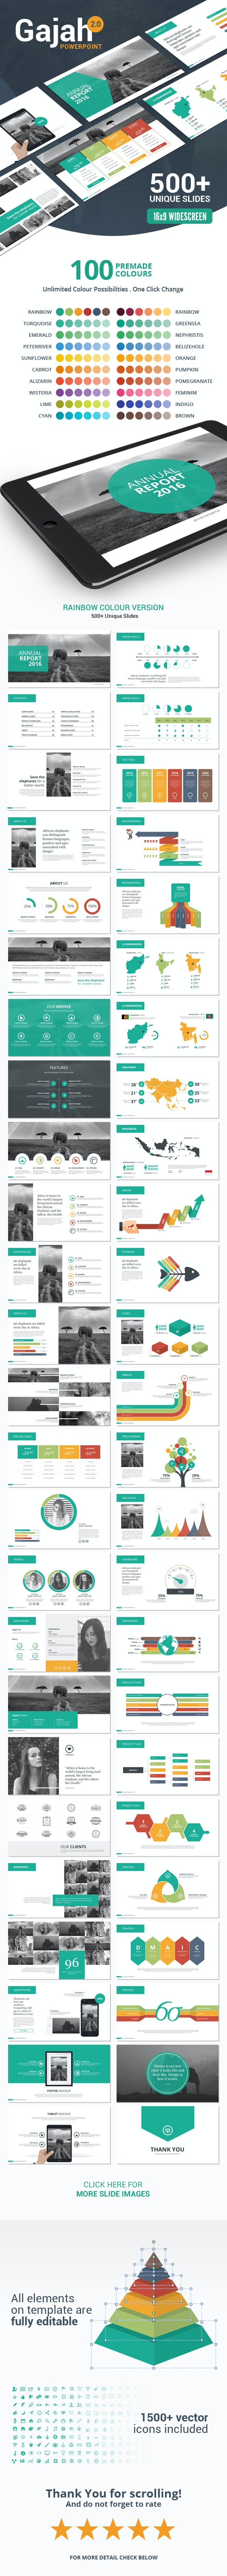 Gajah | PowerPoint Template - PowerPoint Templates Presentation Templates